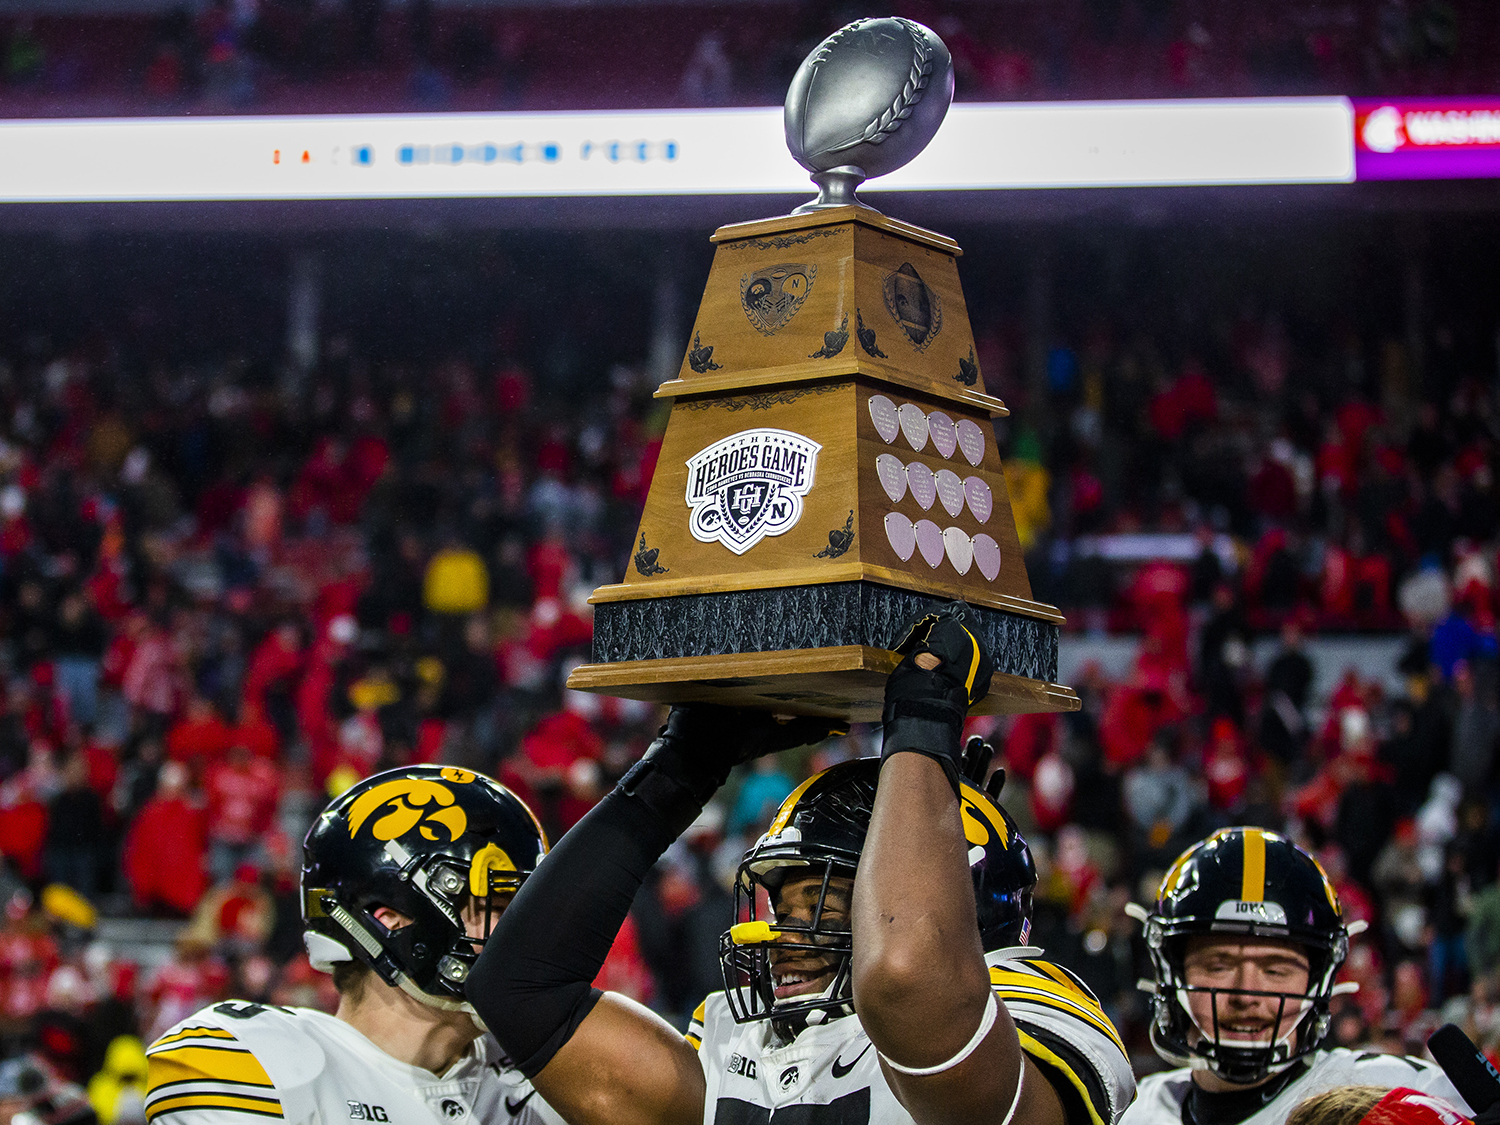 Iowa defensive lineman Chauncey Golston carries the Heroes Trophy after the football game against Nebraska at Memorial Stadium on Friday, November 29, 2019. The Hawkeyes defeated the Cornhuskers, 27-24.